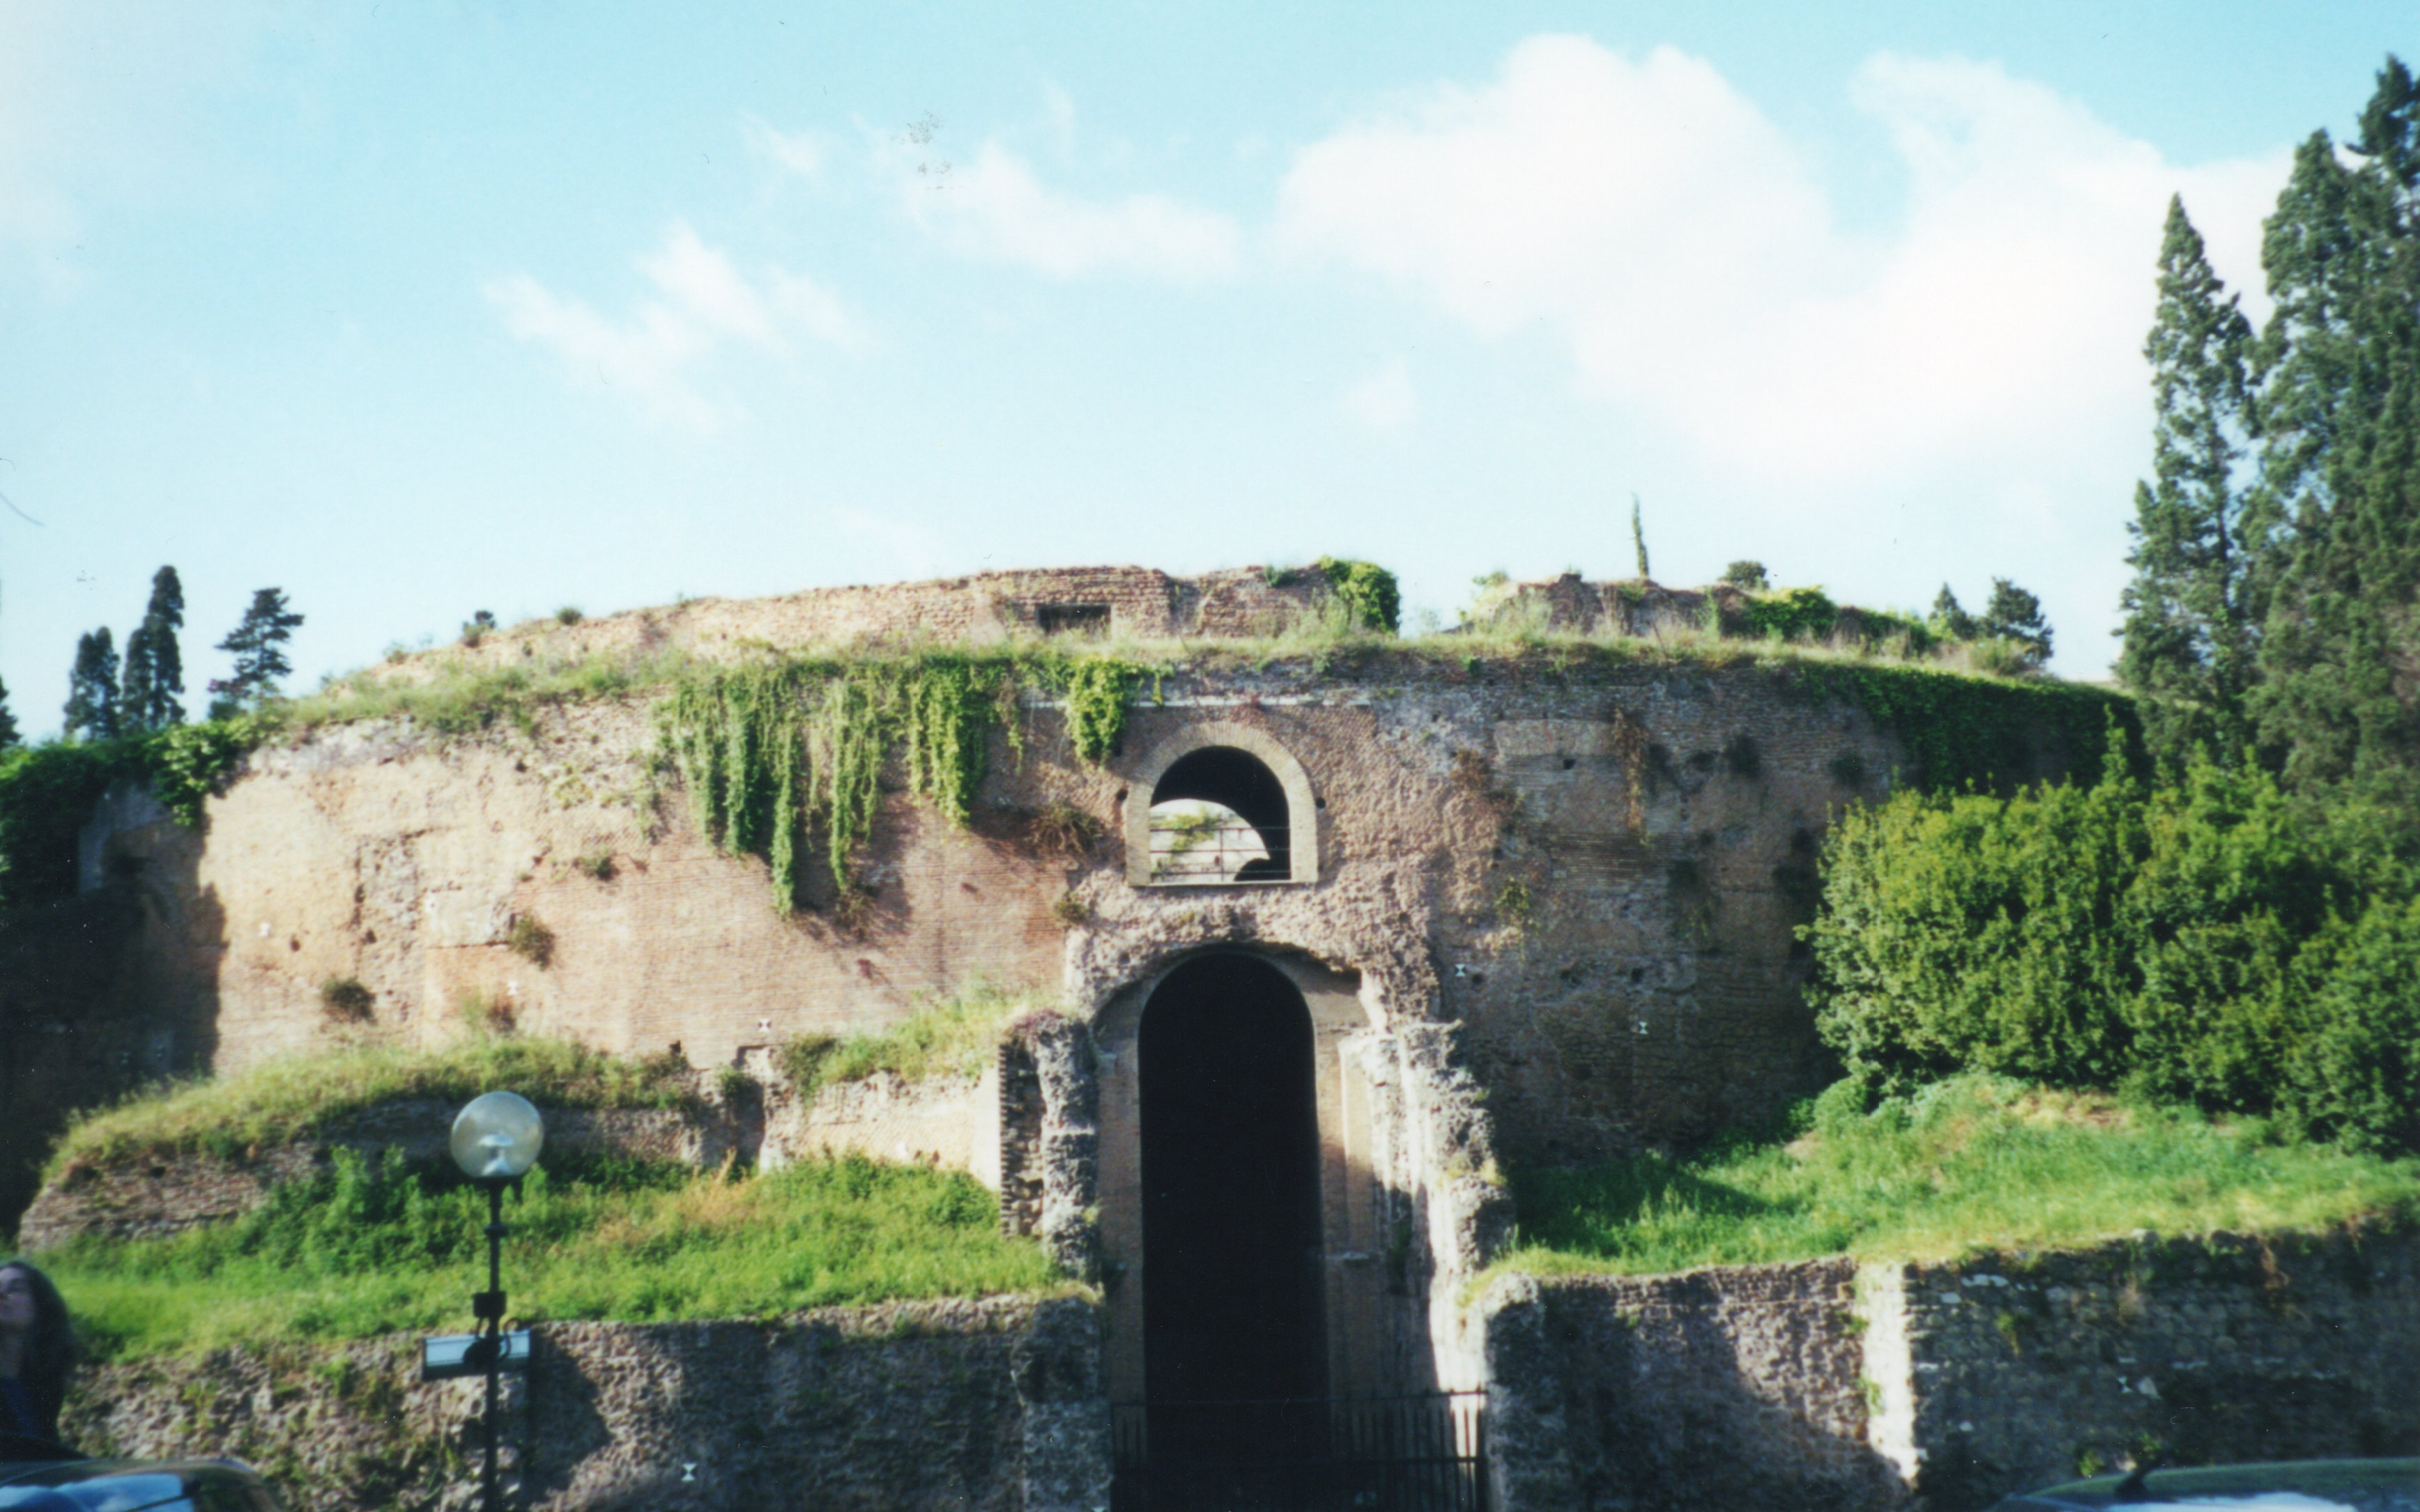 Maula Ali Shrine Wallpaper: Cemetery Of The Week #32: The Mausoleum Of Augustus